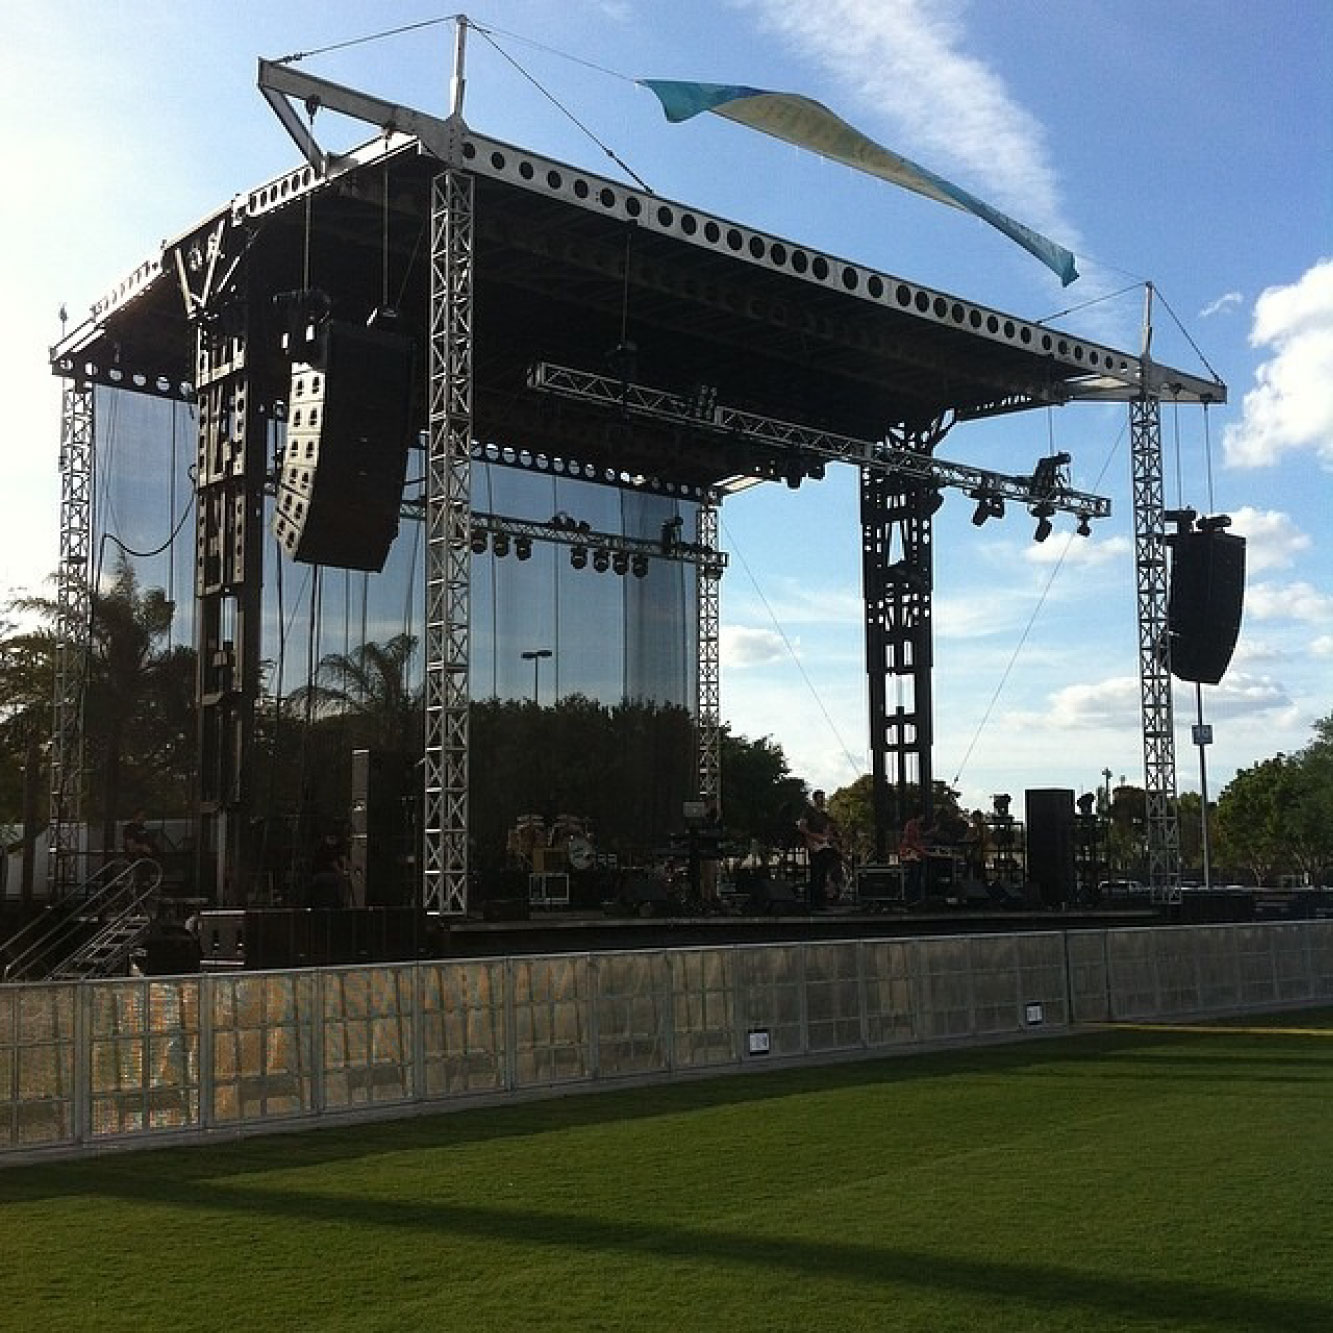 The festival embraces the hydraulic stage